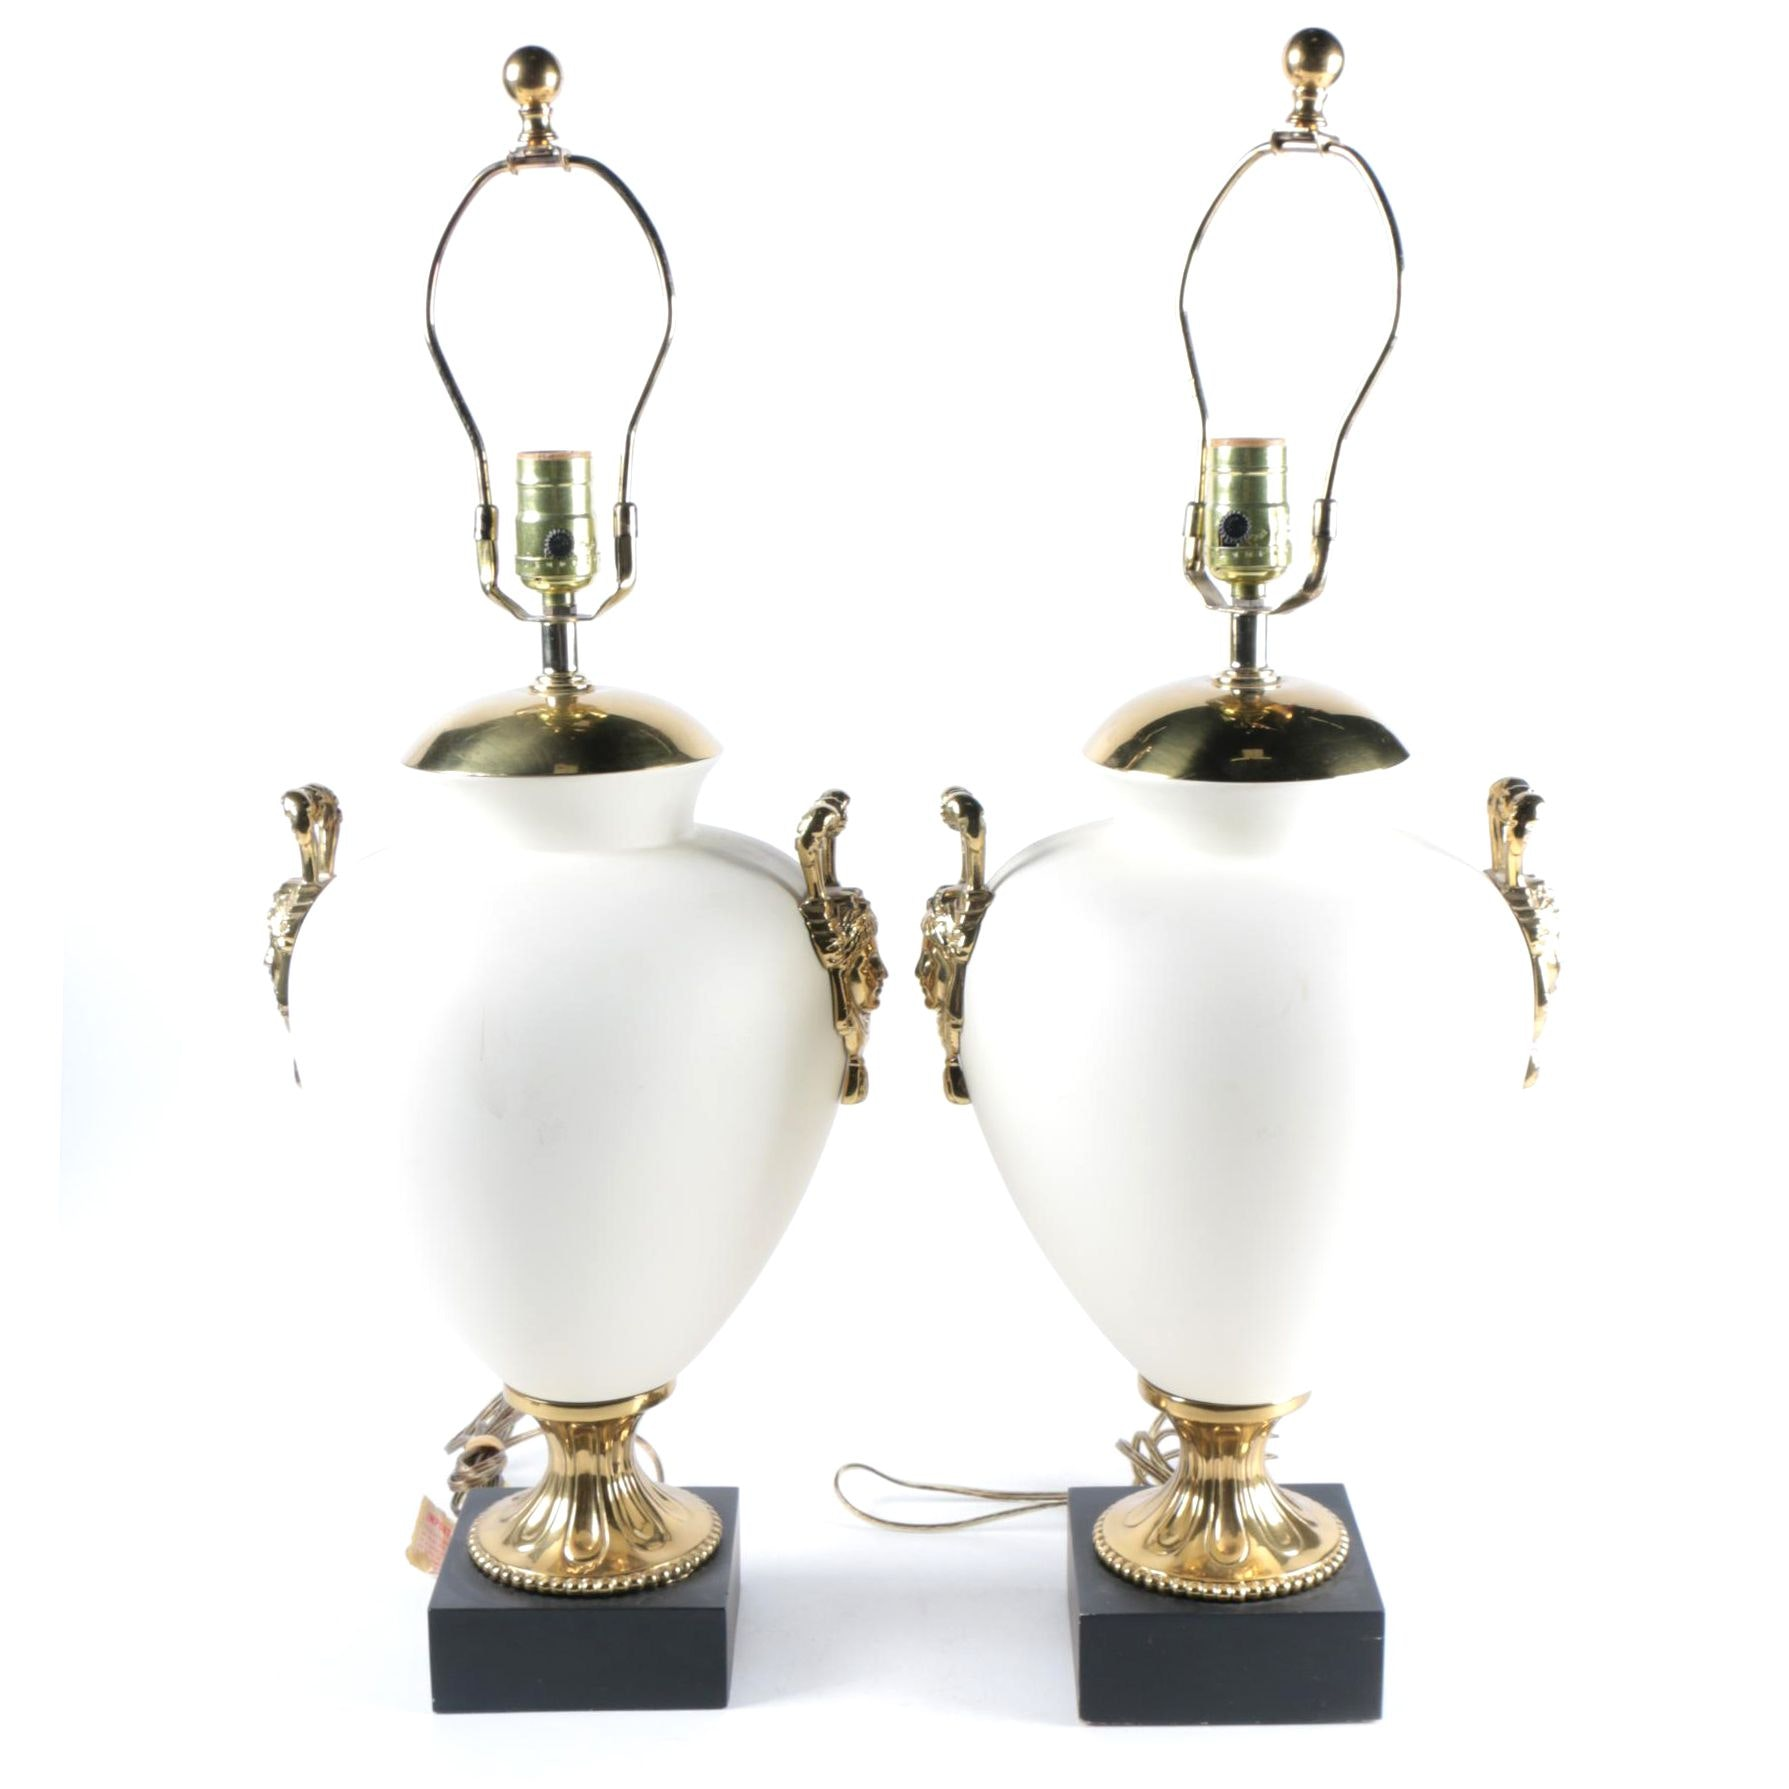 Pair of Table Lamps with Figural Accents